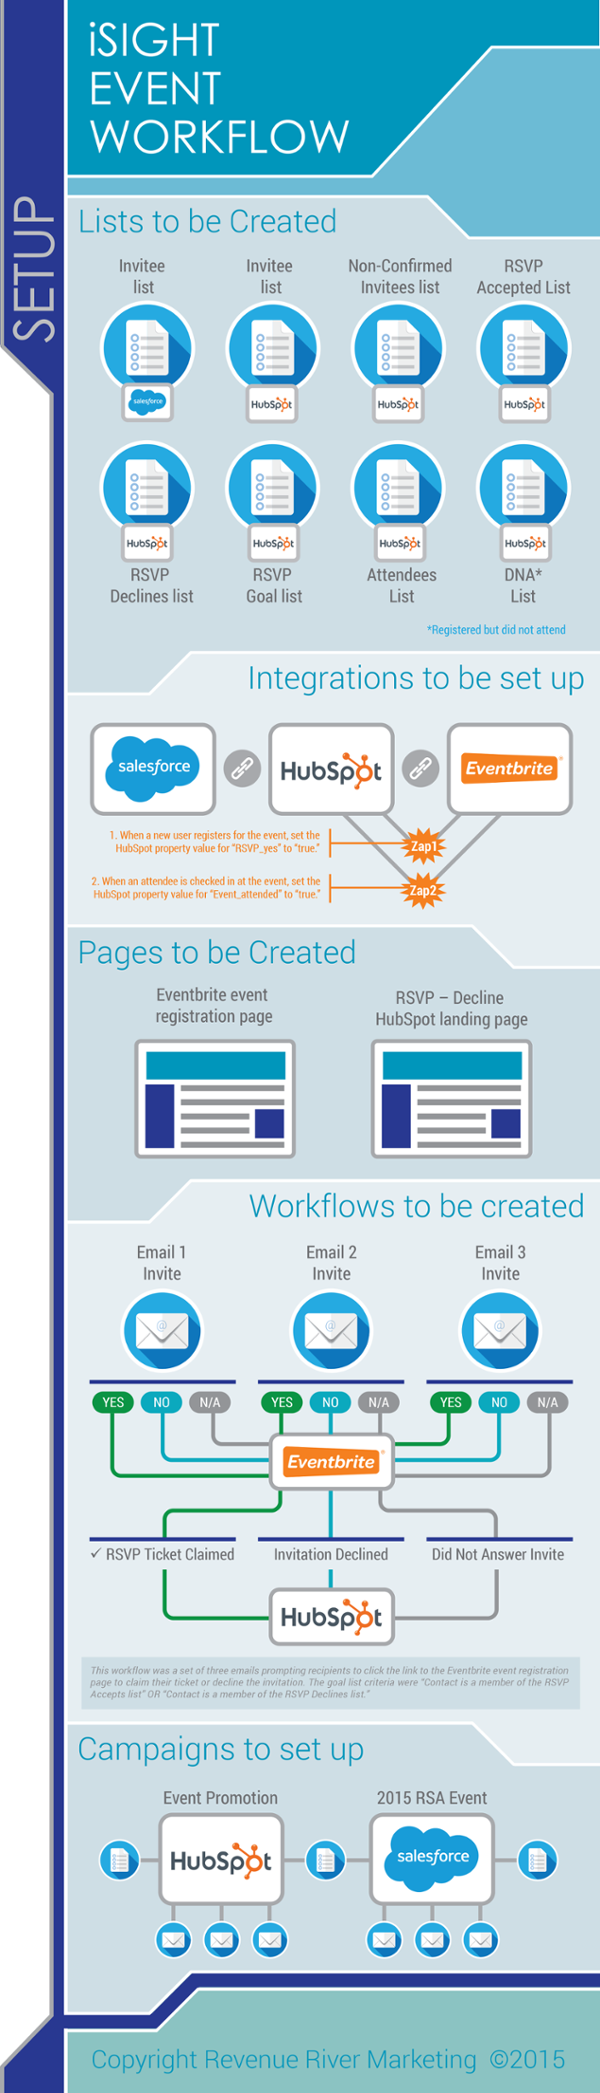 iSIGHT_Event_Workflow_Infographic